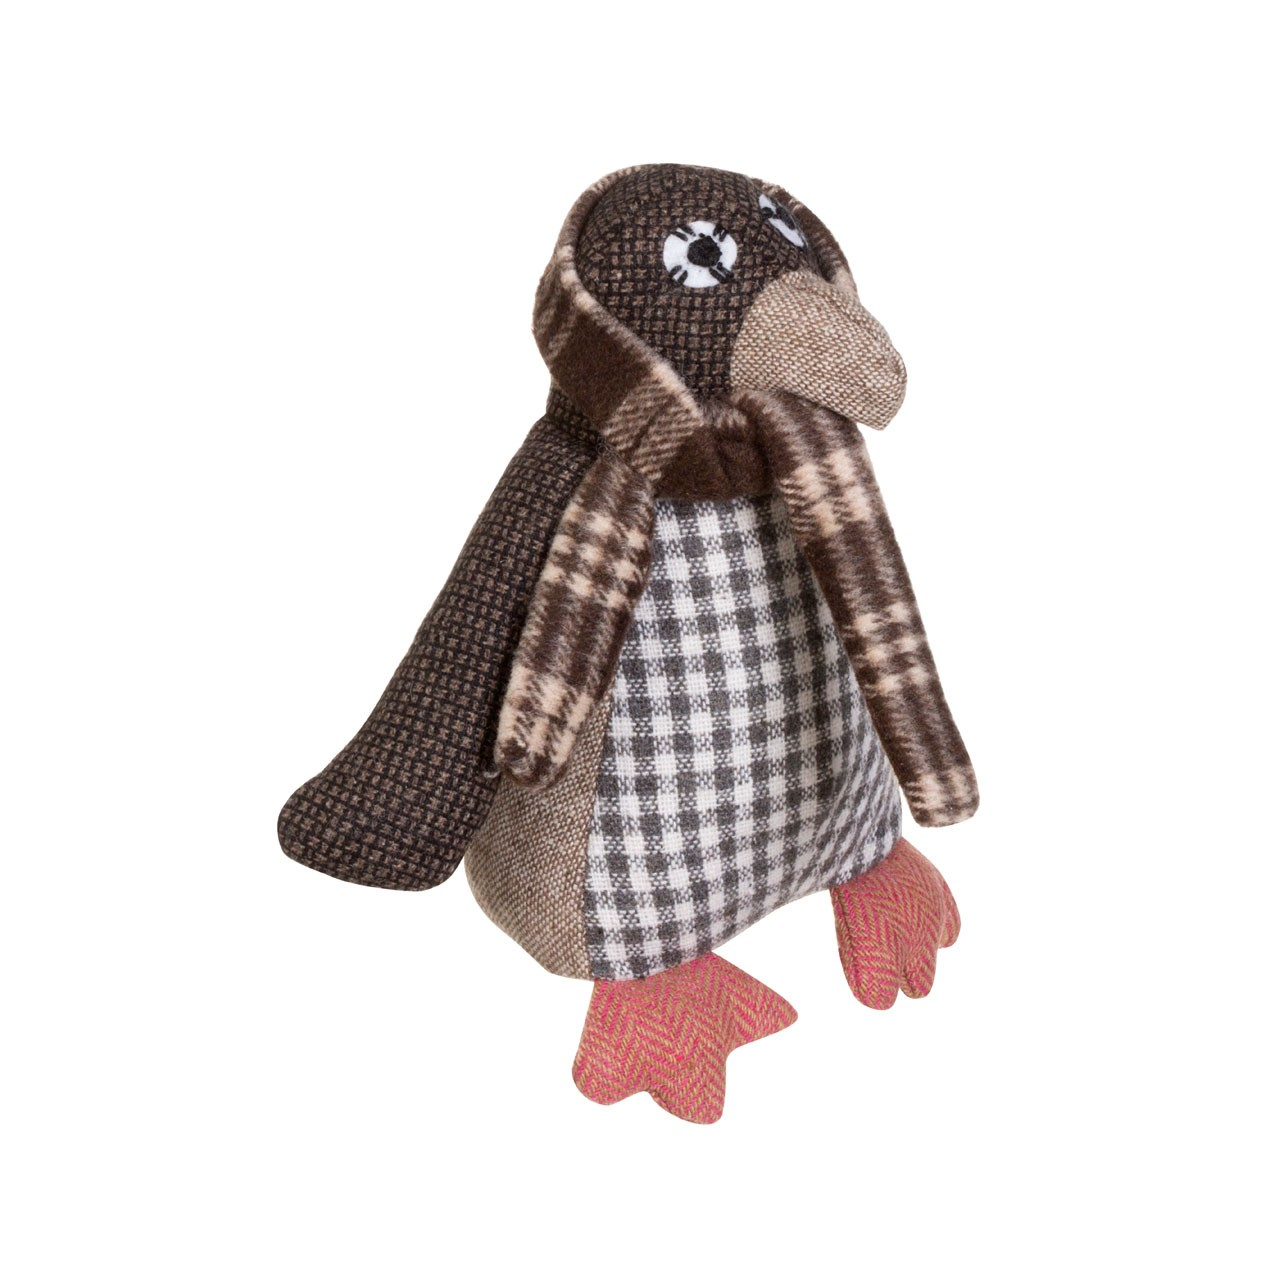 Prime Furnishing Heritage Large Penguin Door Stop - Brown